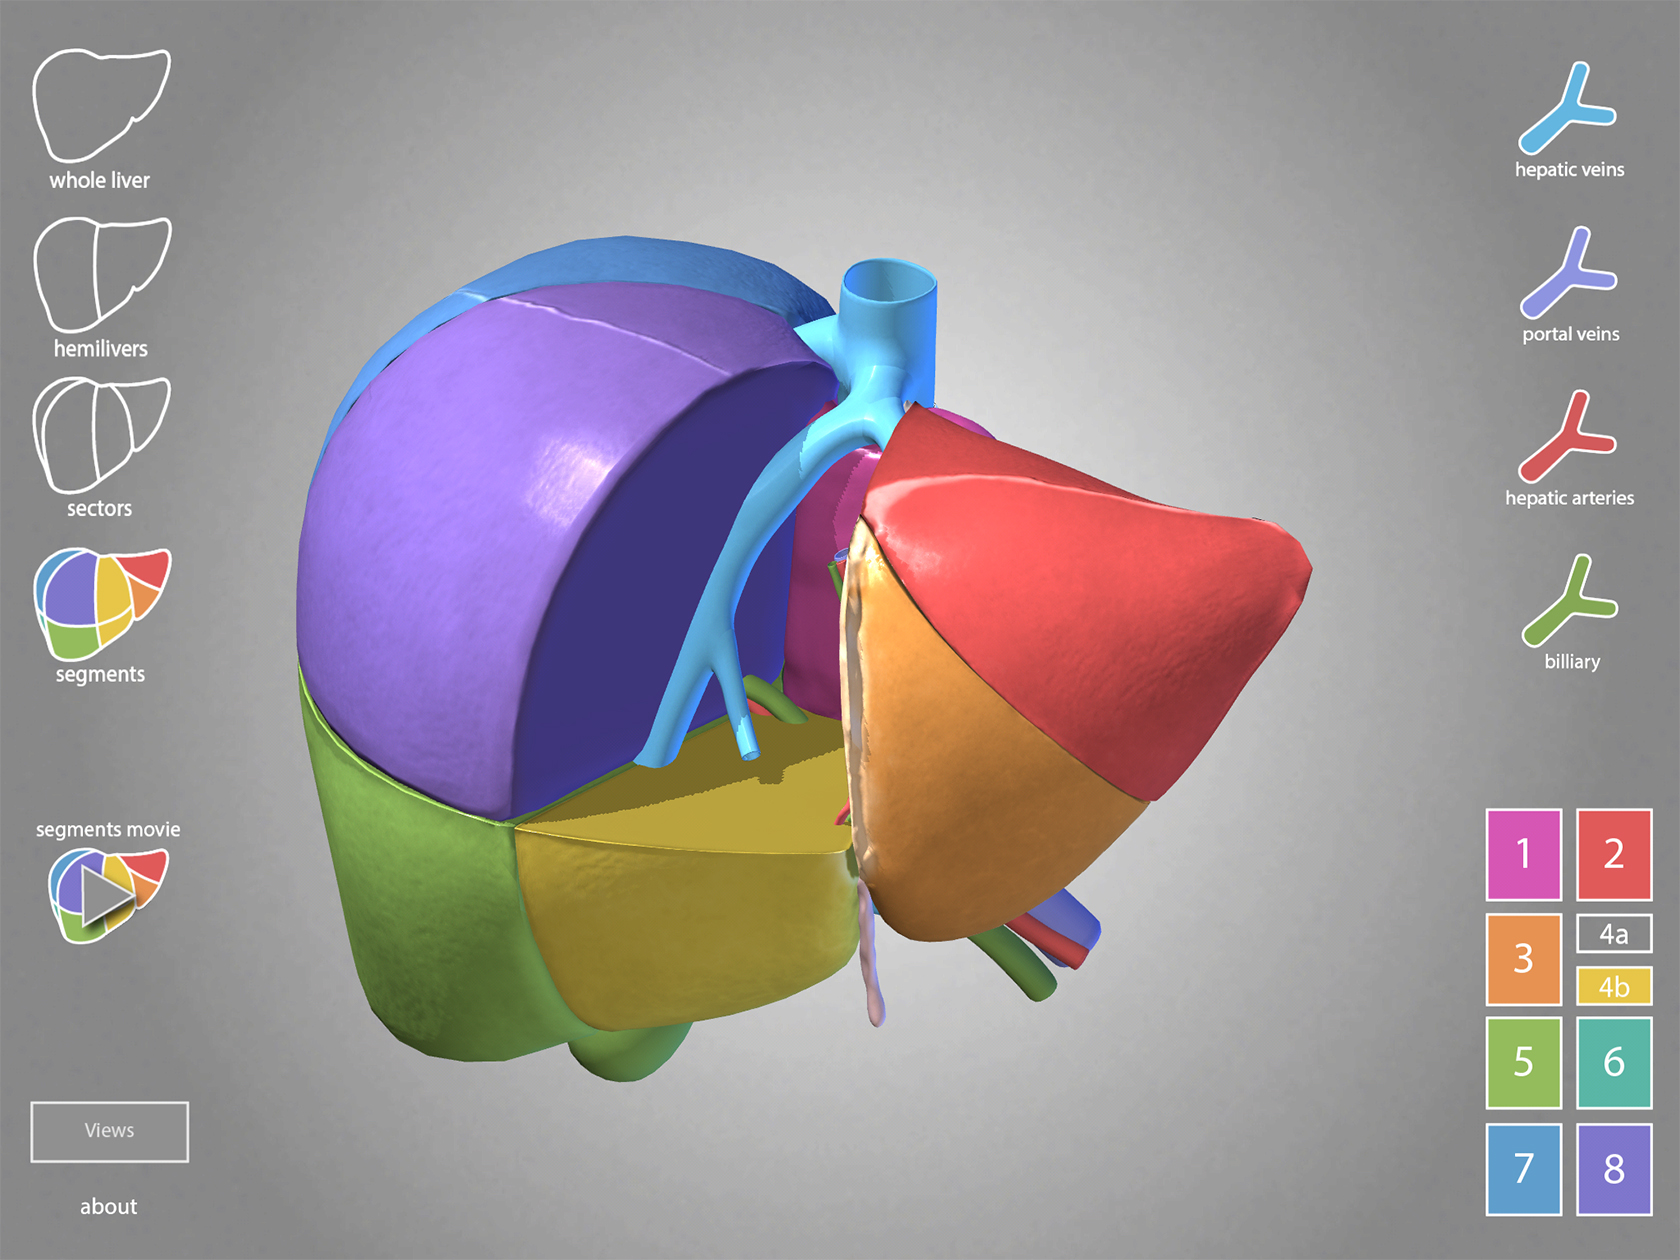 Surgical Anatomy of the Liver